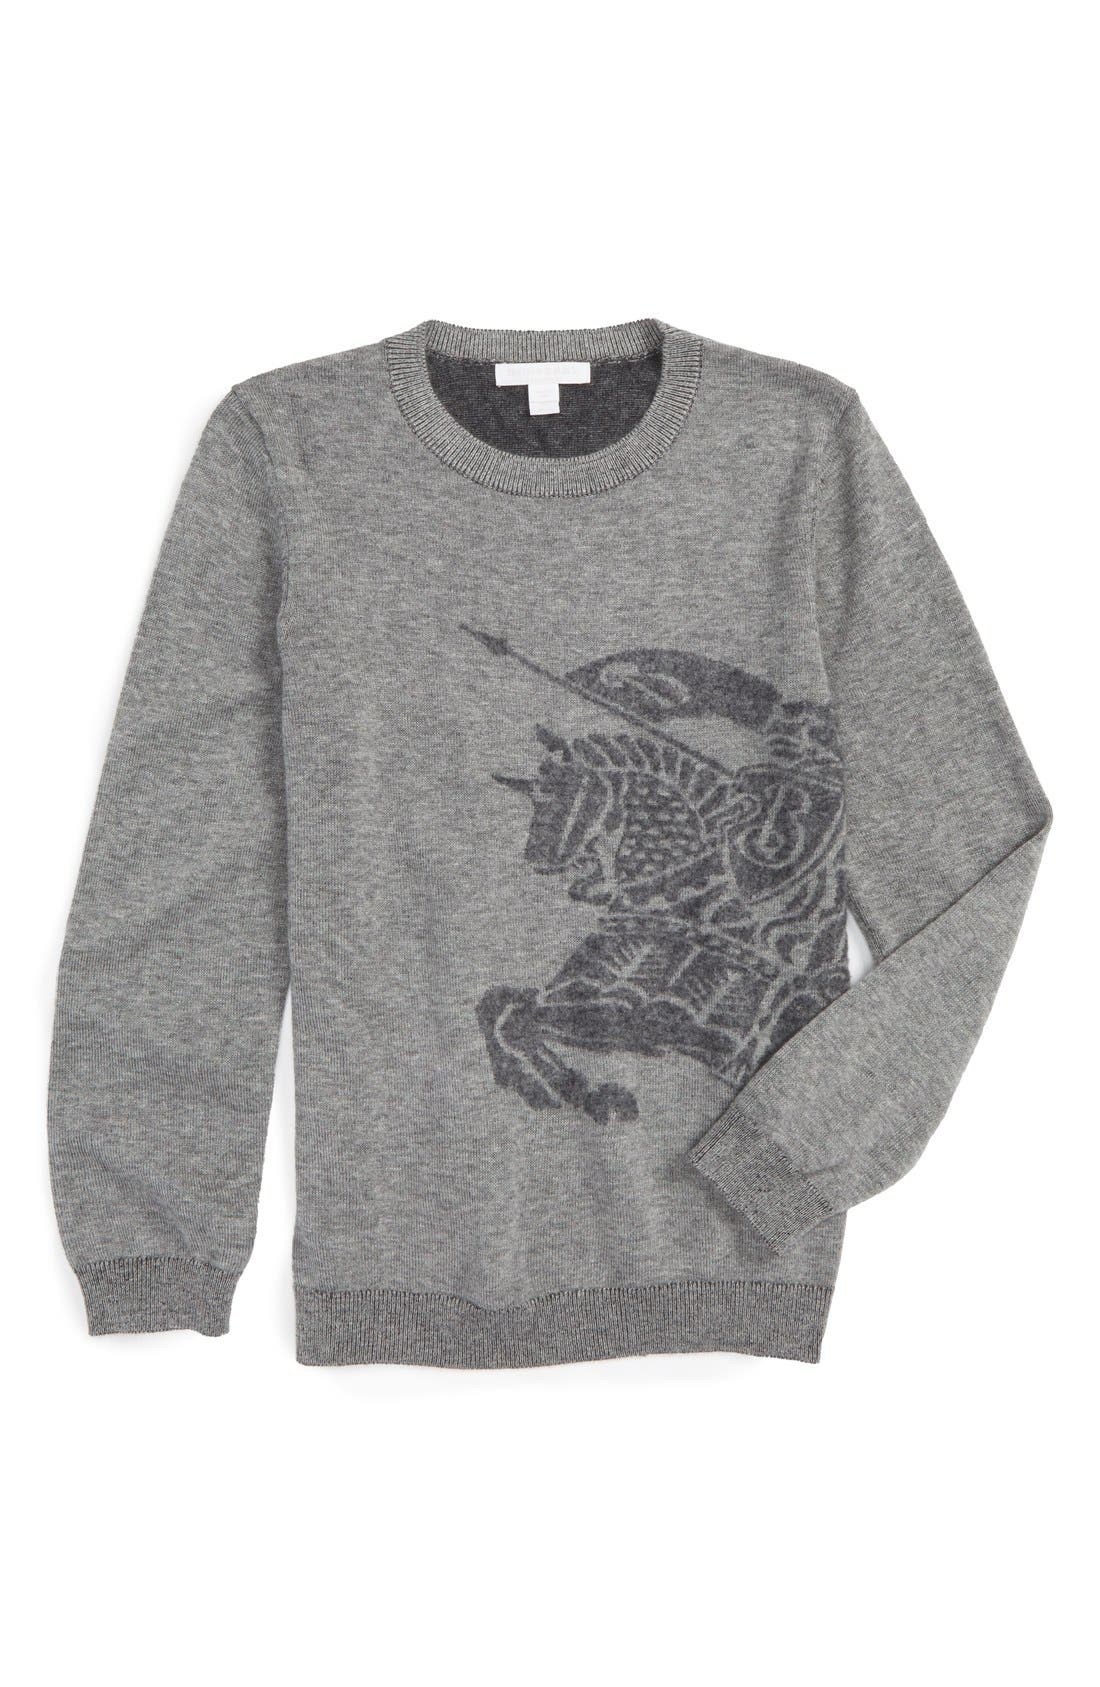 Alternate Image 1 Selected - Burberry Mini Chalfont Cashmere Sweater (Little Boys & Big Boys)